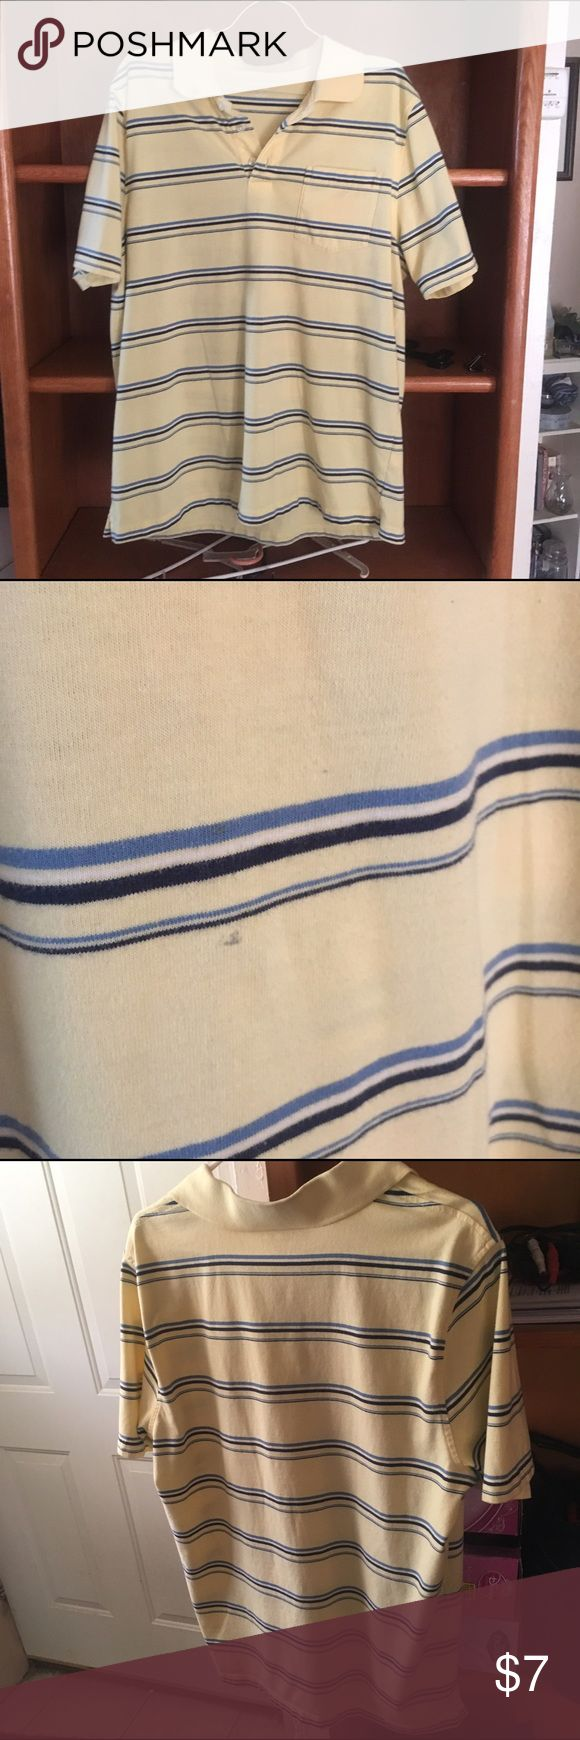 Yellow size large polo shirt with pocket Made by Croft and Barrow is size large.  It is yellow with varying blue stripes.  It is used but hubby wears a Medium so it was not worn much.  There is a slight discoloration by one of the stripes.  It's been there since hubby received as gift. croft & barrow Shirts Polos